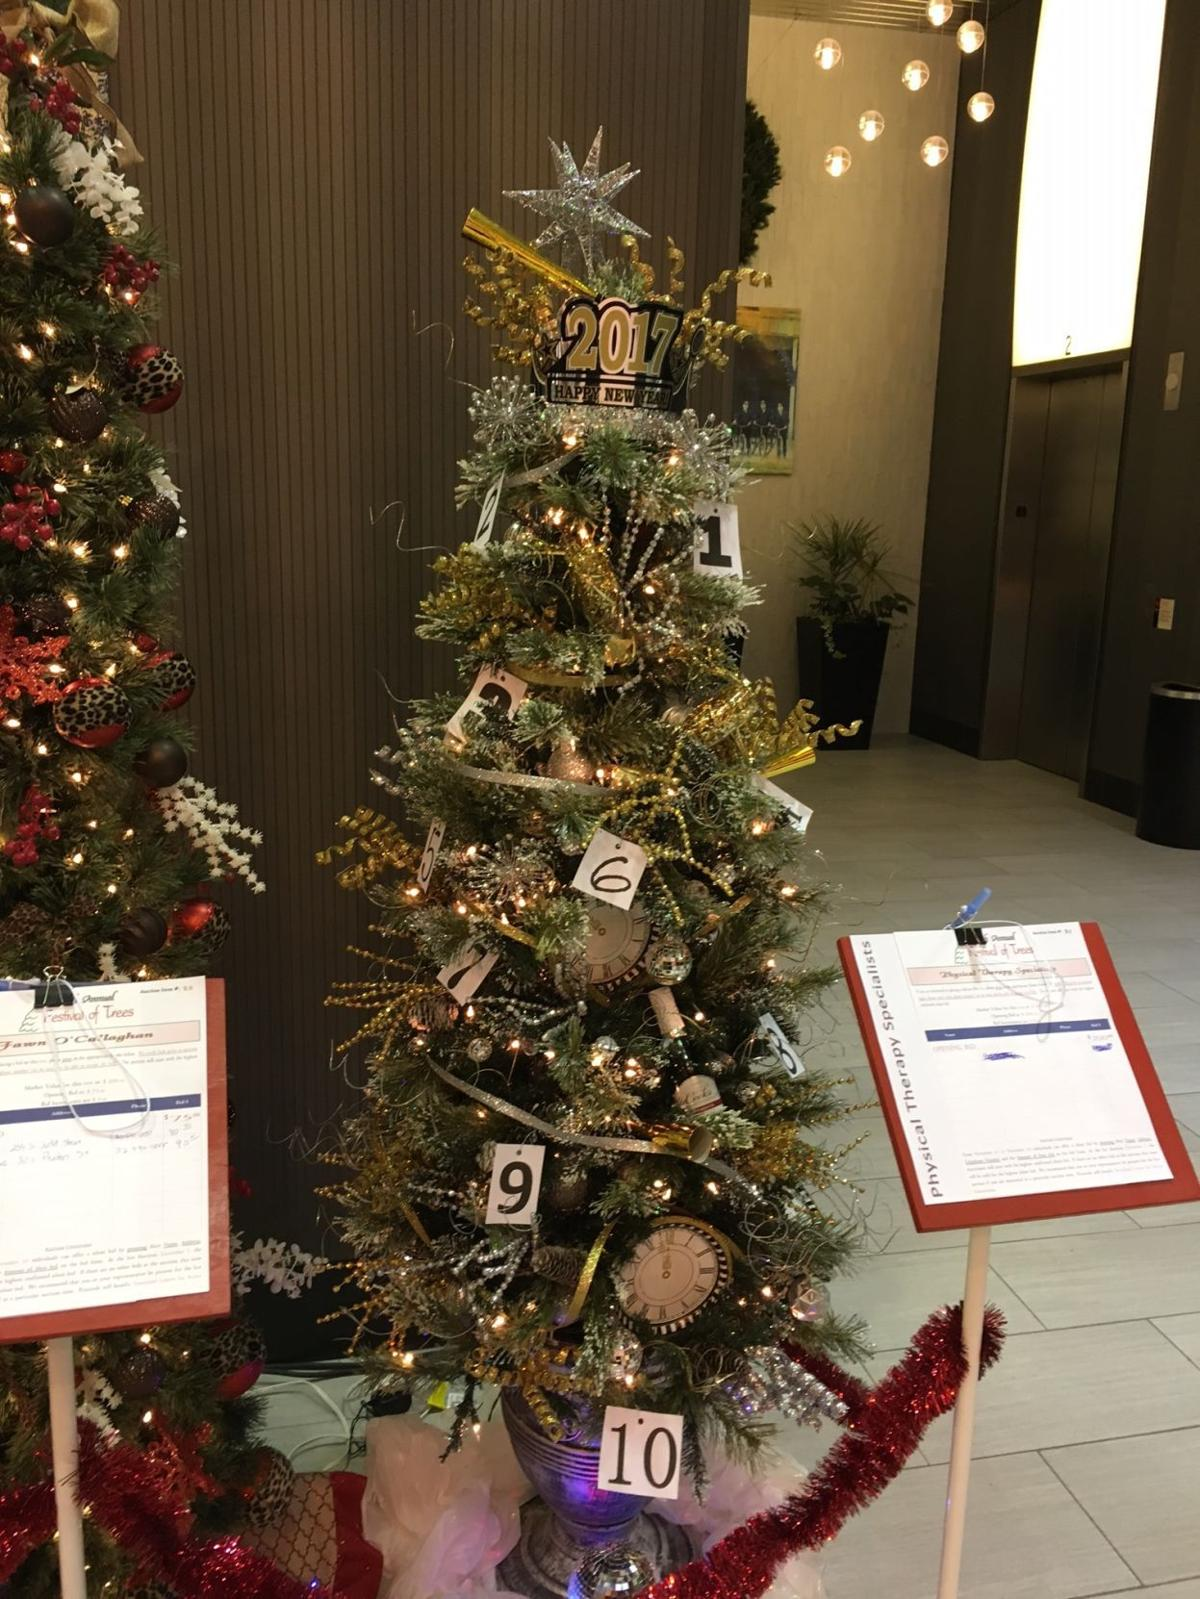 Photos: Award winners at the 2016 Festival of Trees | Local news ...